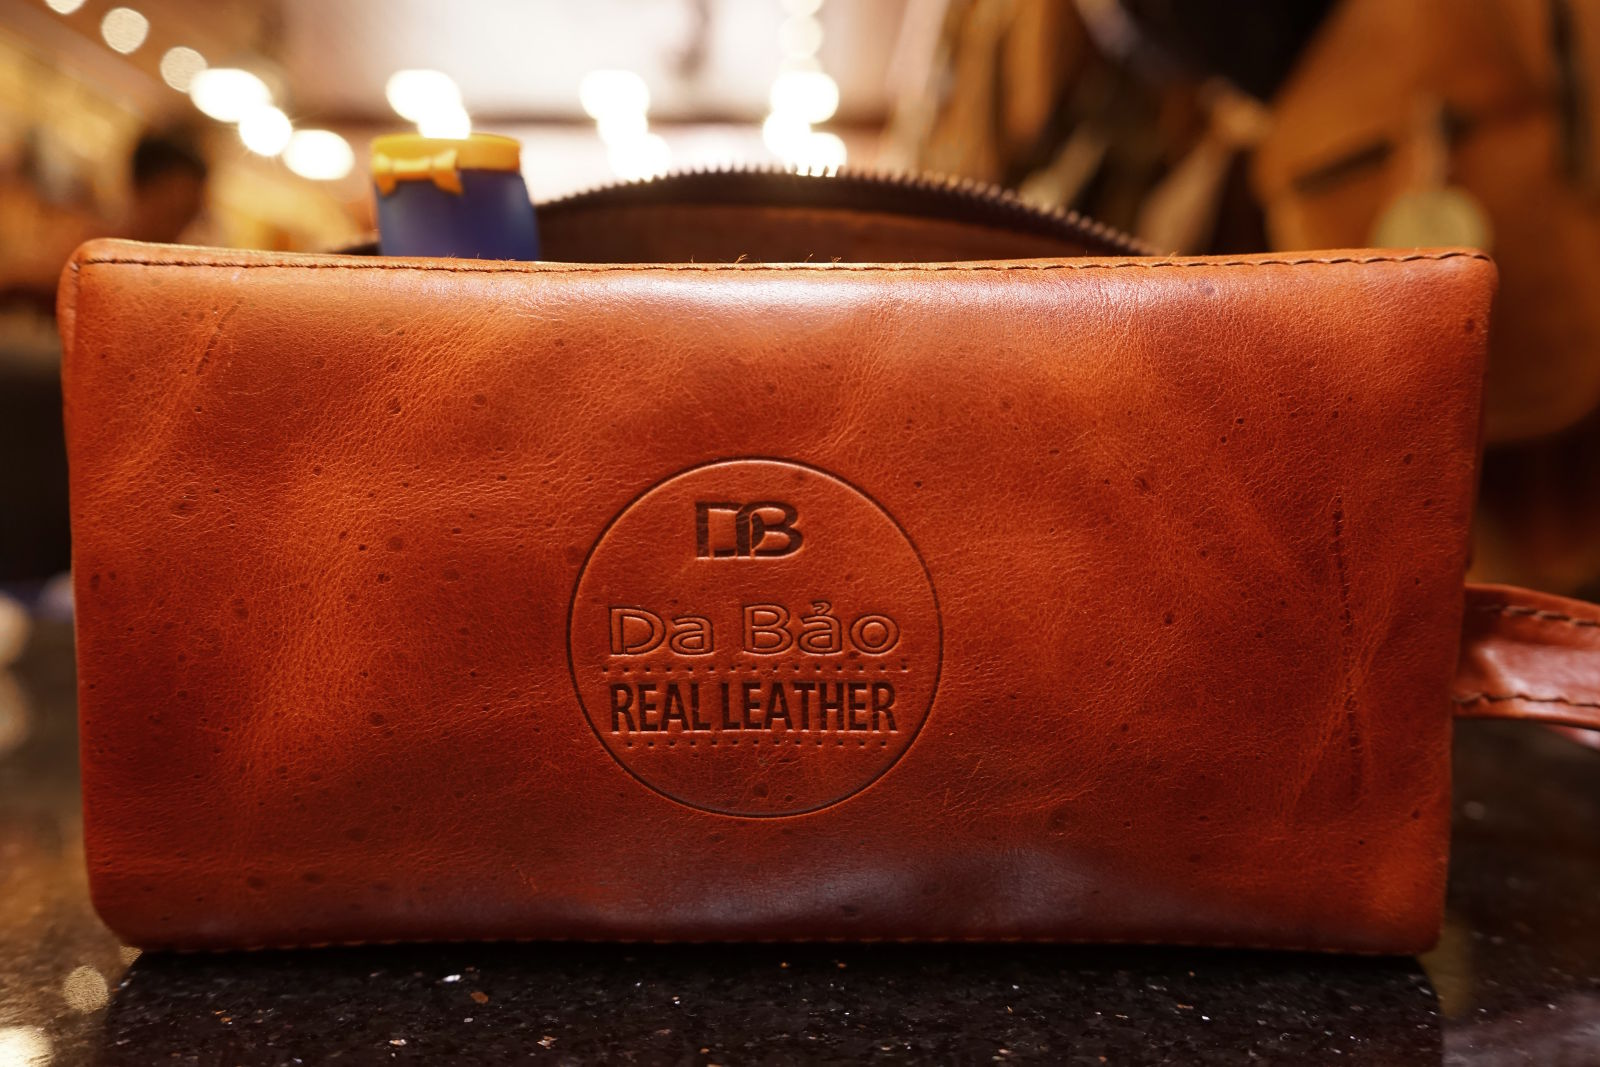 Real Leather Hoi An - Da Bao Real Leather: Front view of brown buffalo leather toiletry bag with Da Bao logo.